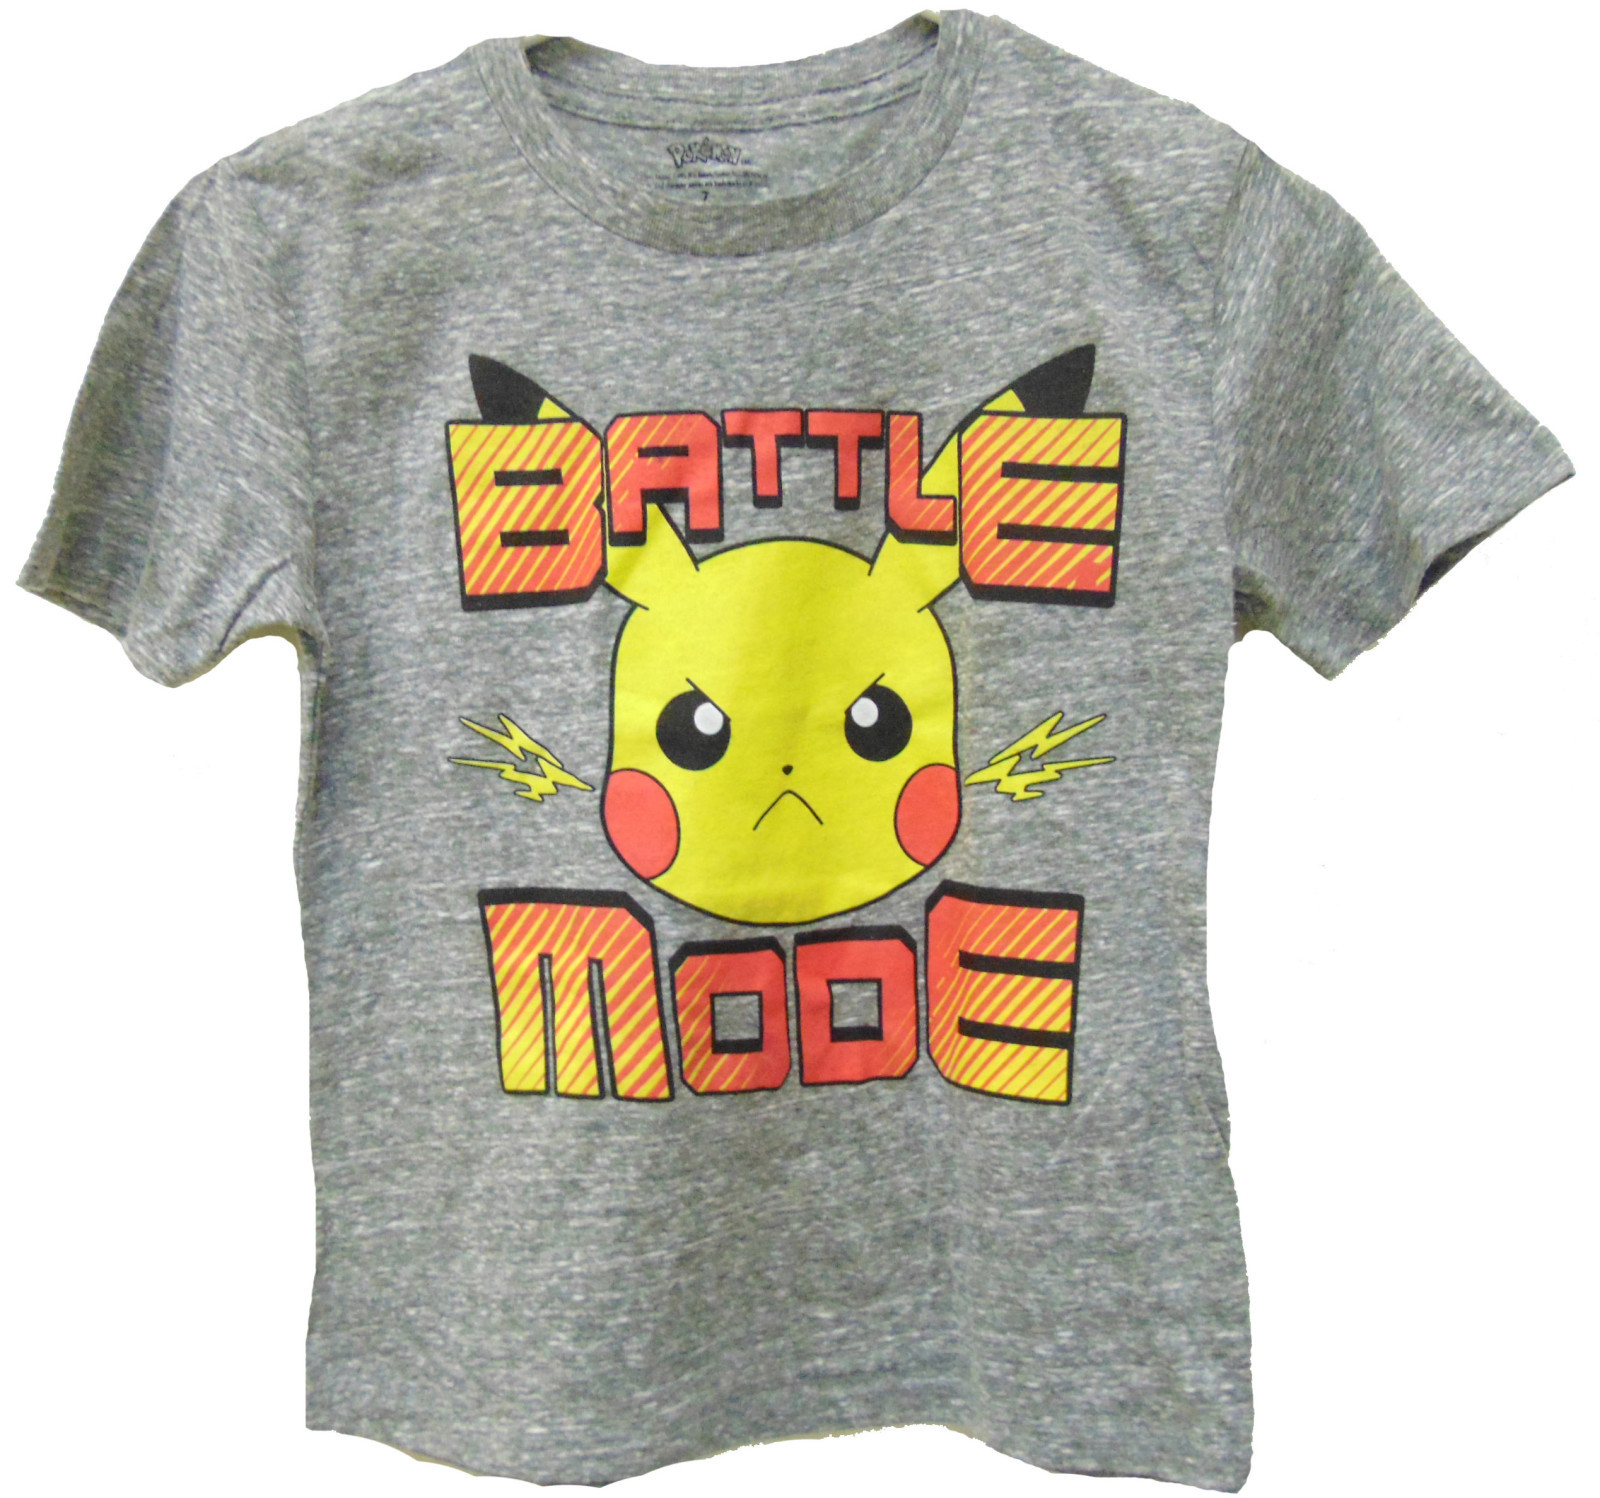 Pokemon Battle Mode T Shirt (Size 7) image